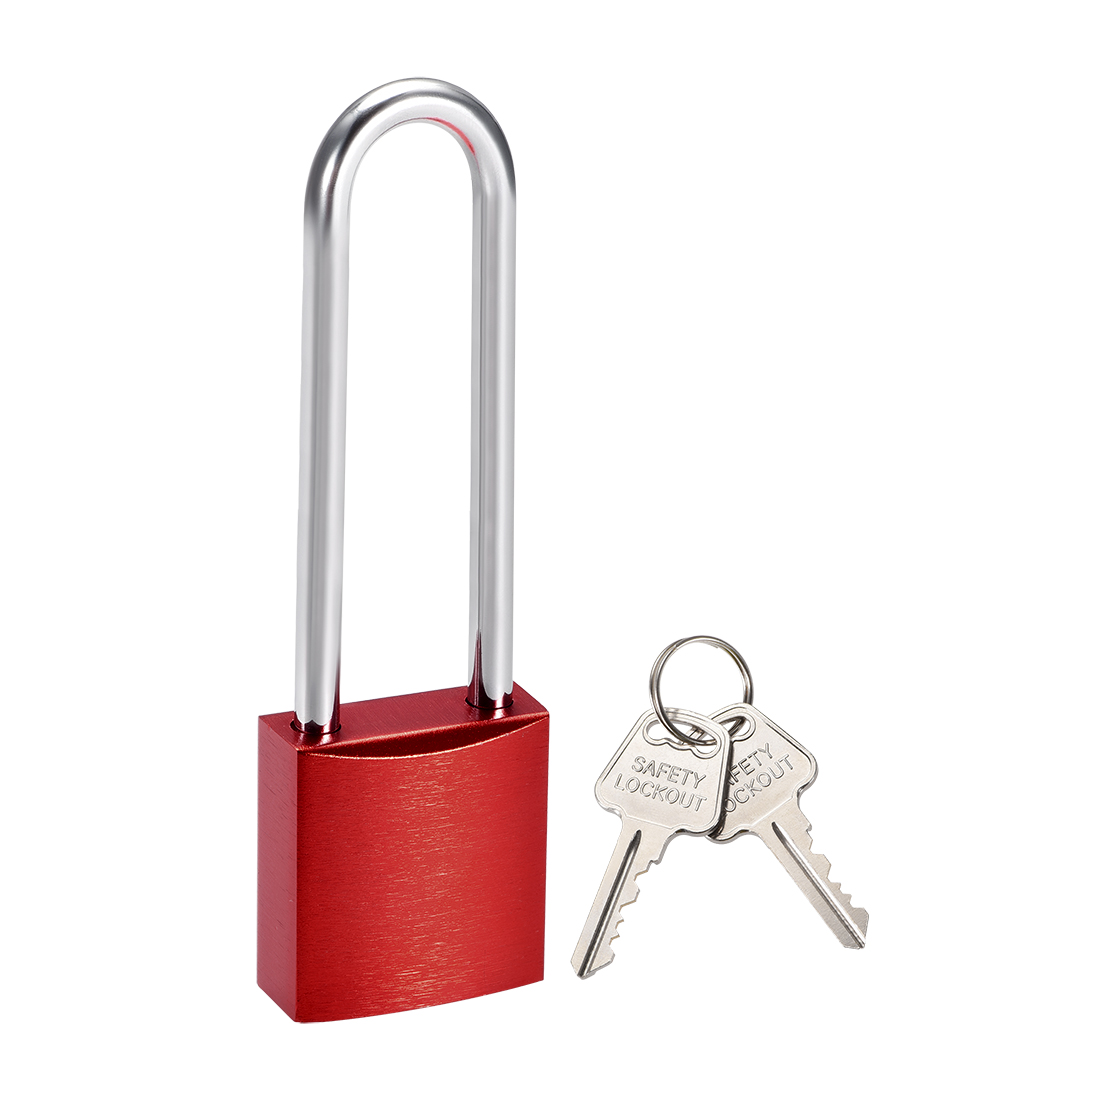 3 Inch Shackle Key Different Safety Padlock Red